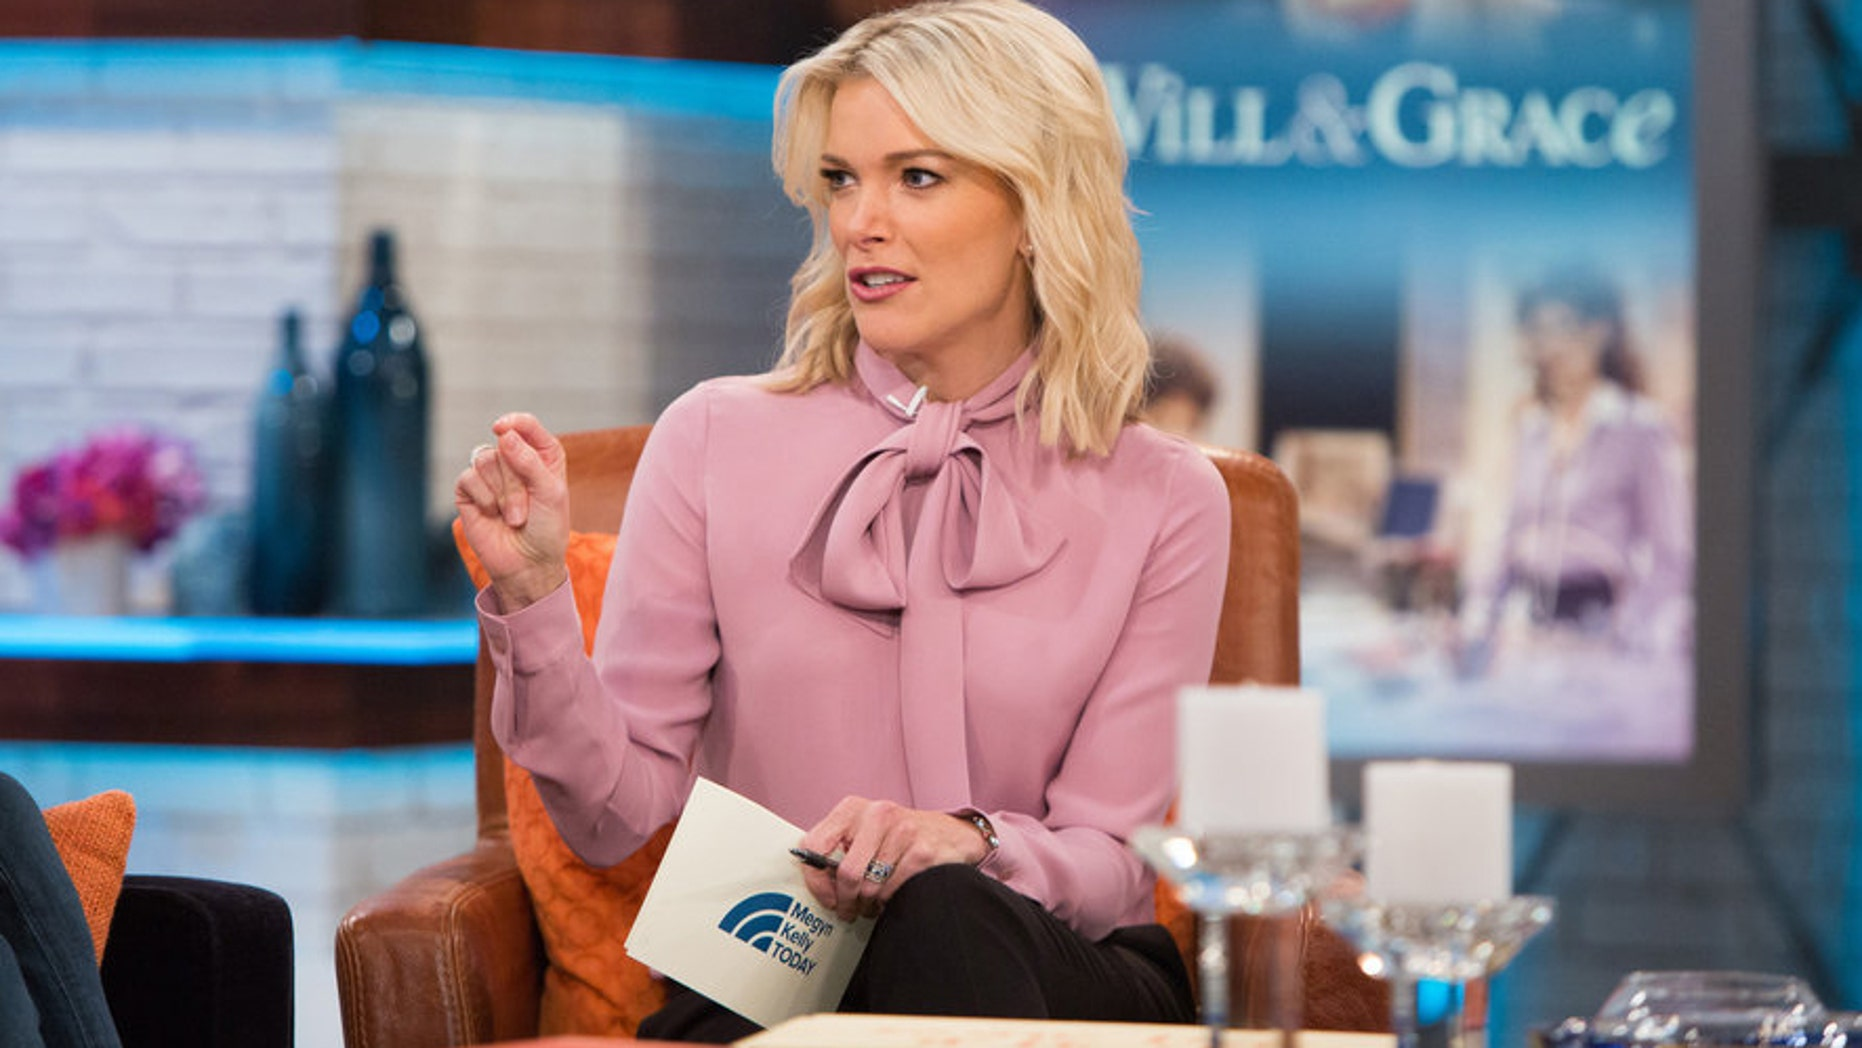 NBC is in talks to give morning show host Megyn Kelly a new time slot of her AM program that has been lagging behind in ratings.